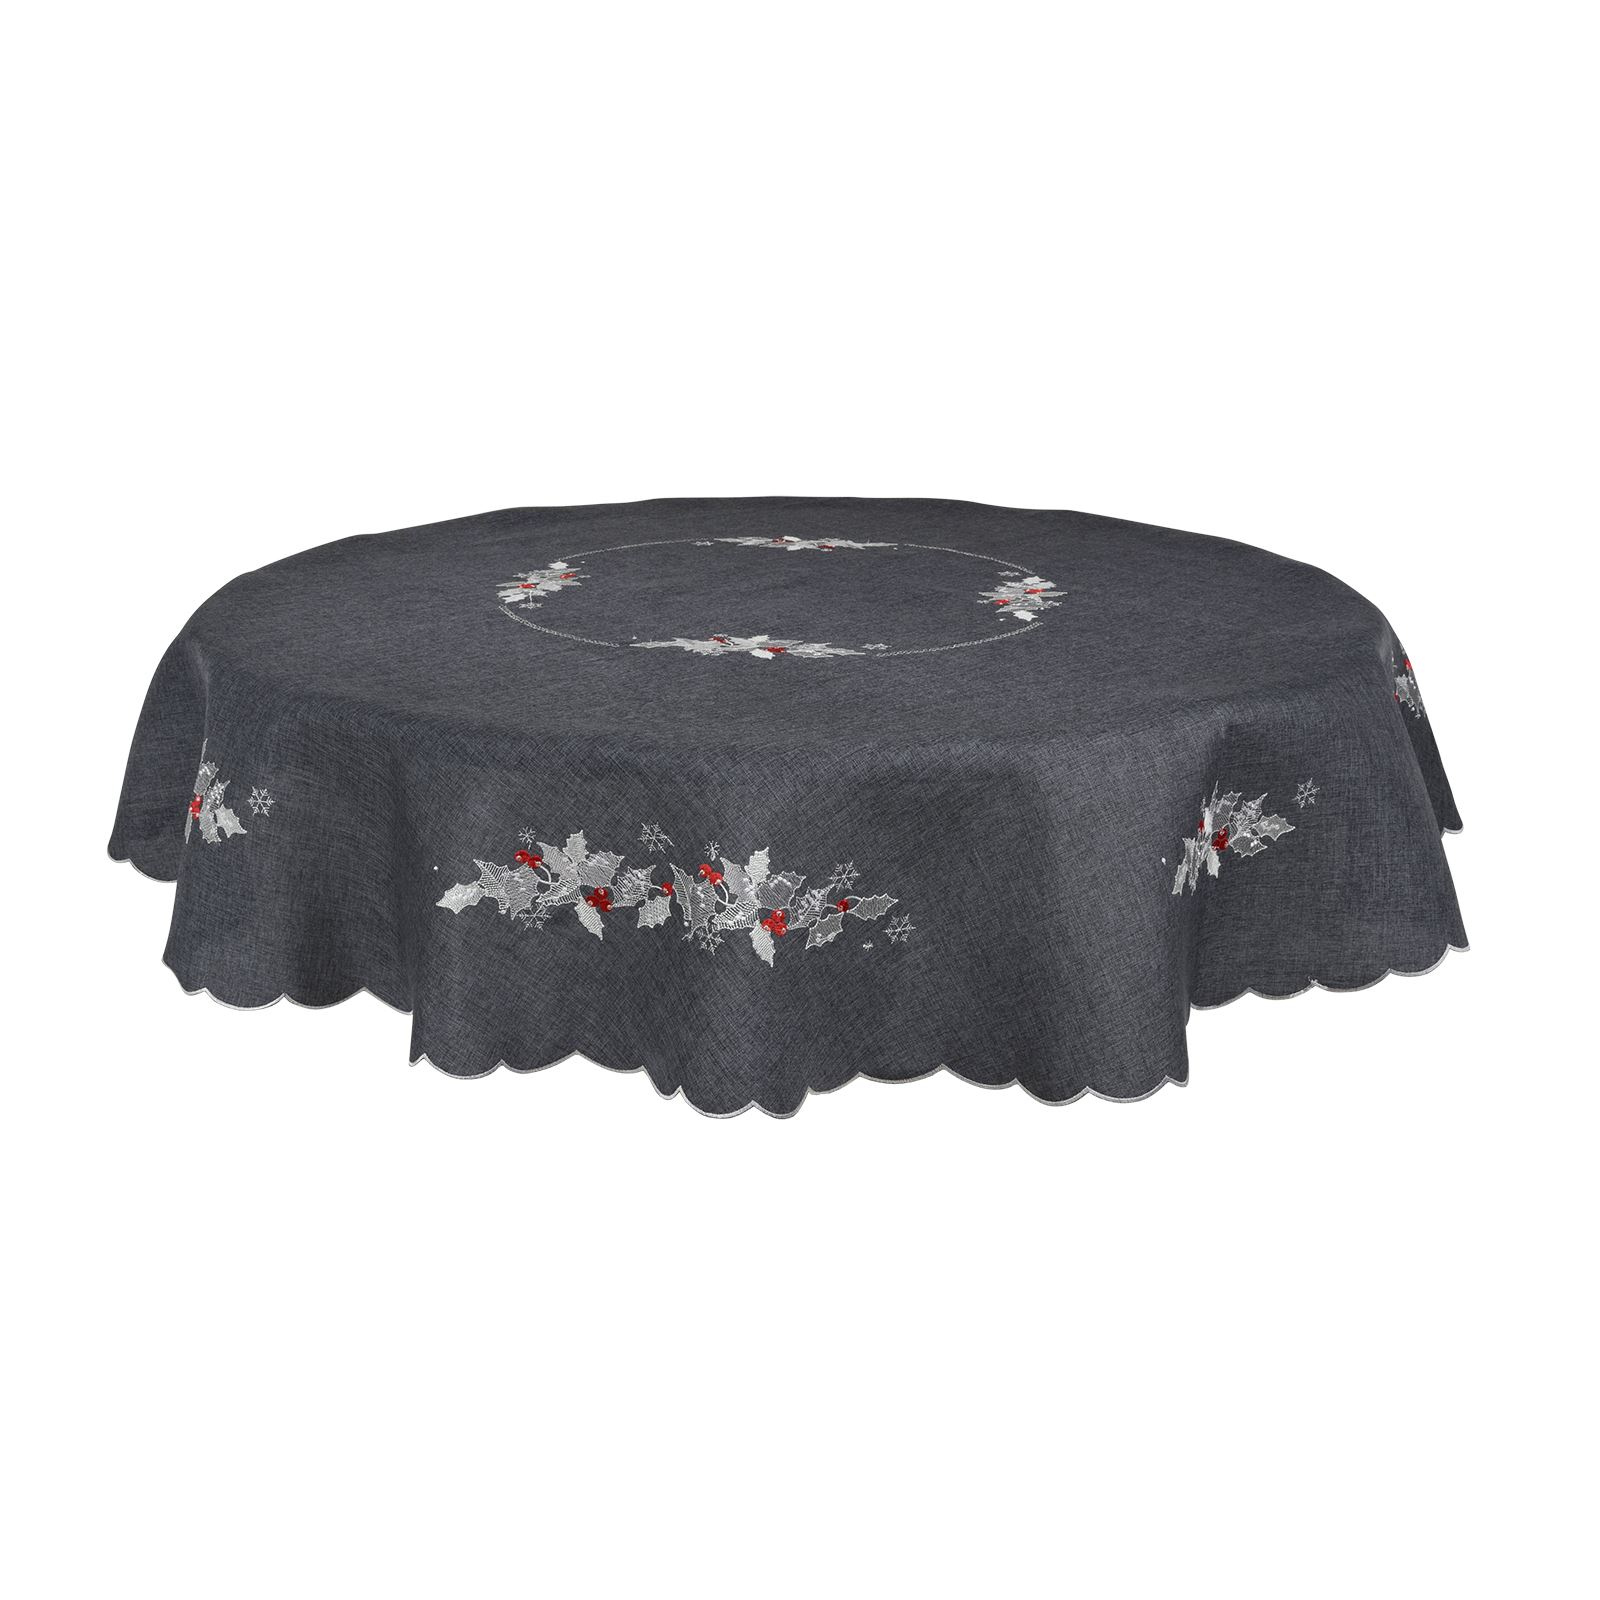 Christmas-Tablecloth-Festive-Pattern-Rectangle-Round-Fabric-Xmas-Room-Decoration